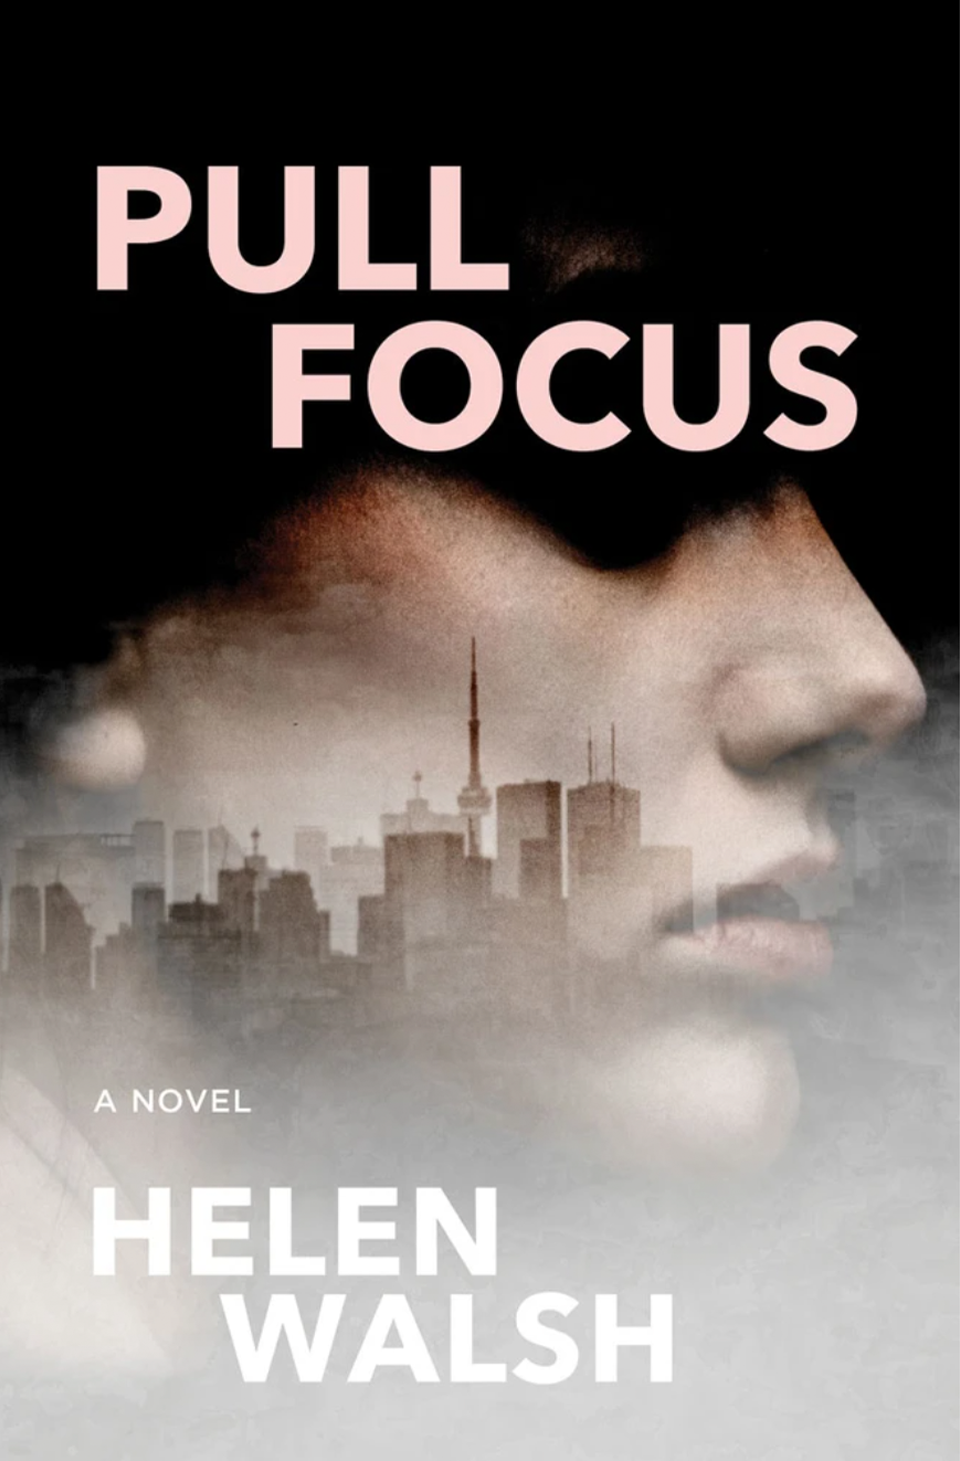 Pull Focus by Helen Walsh